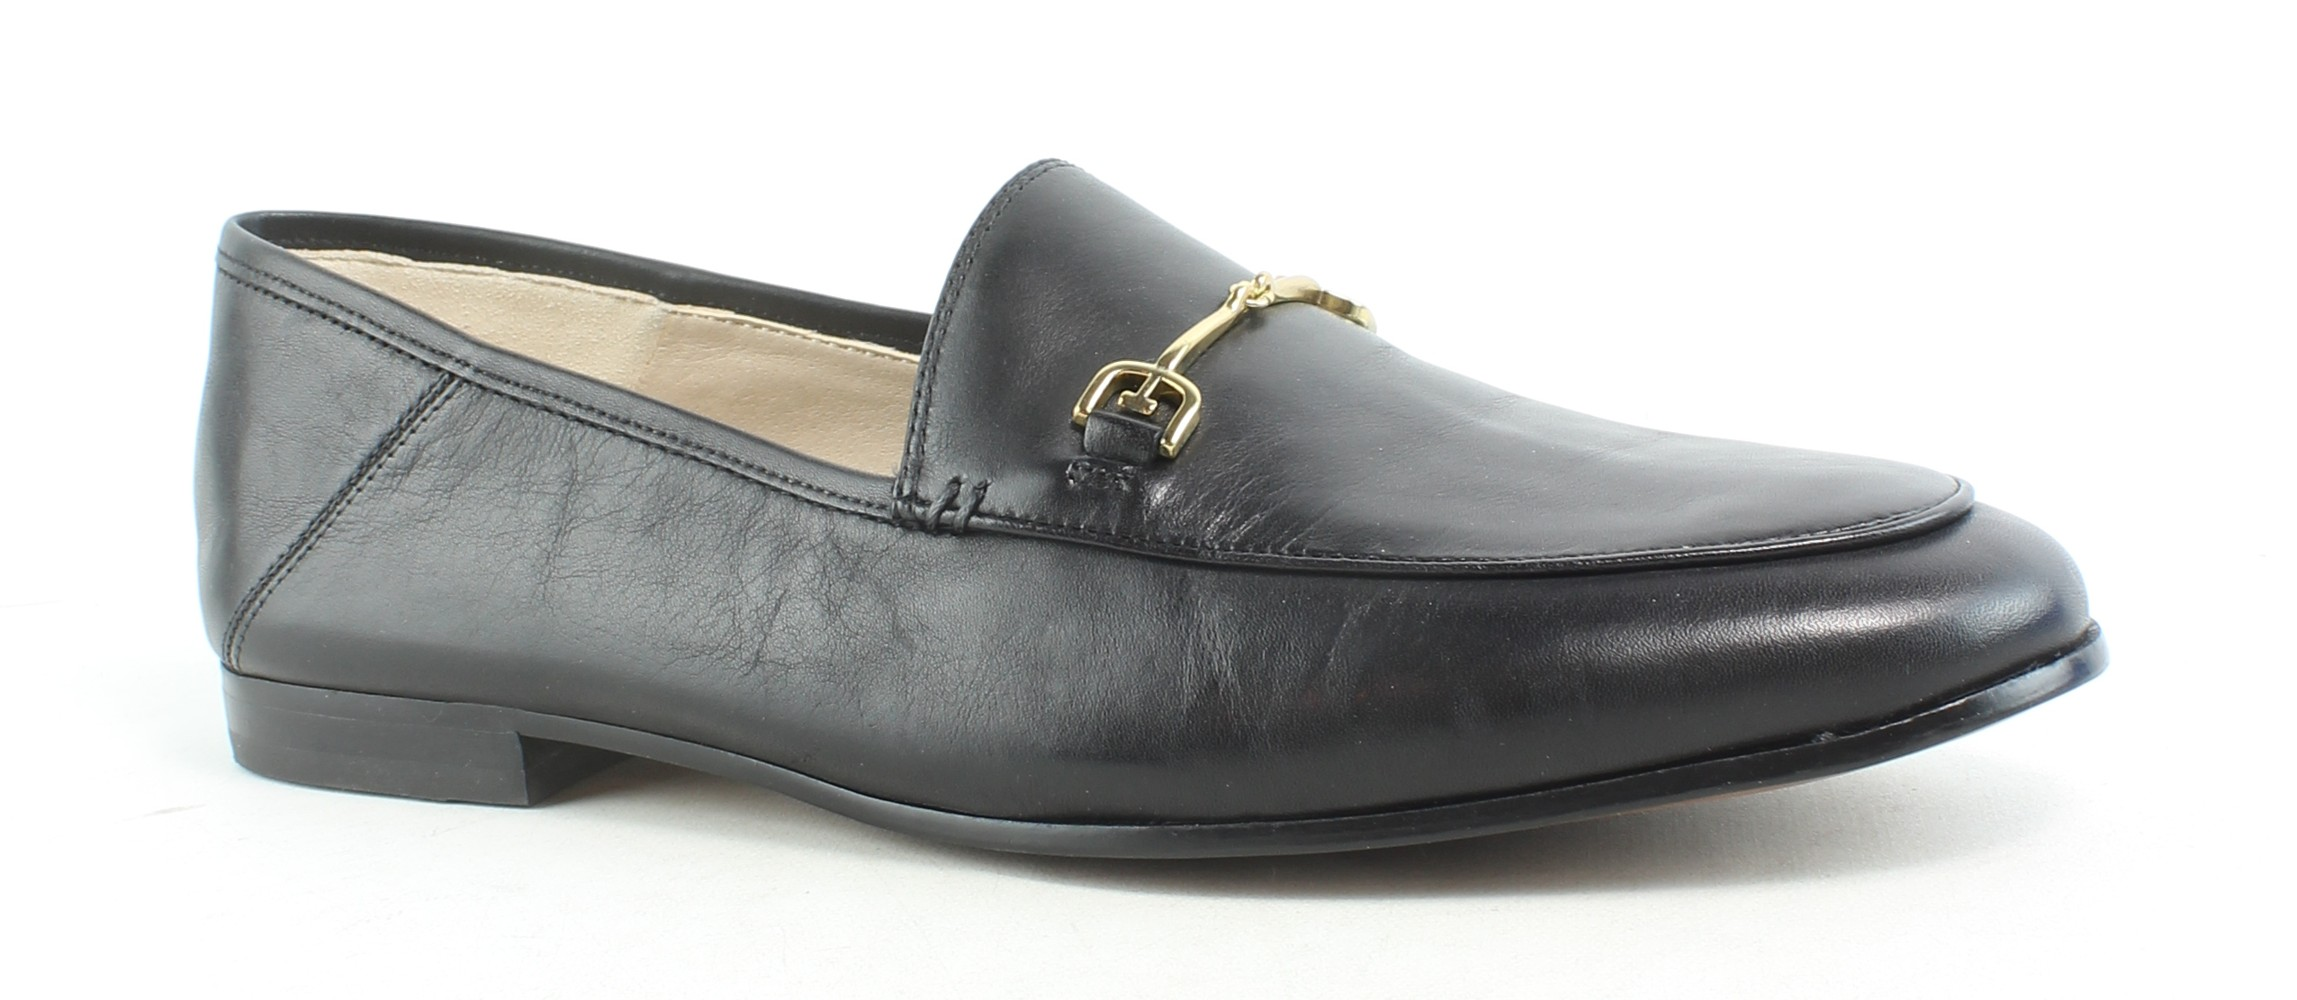 90856a1b7fc Details about Sam Edelman Womens Loraine Black Leather Loafers Size 9.5  (177483)